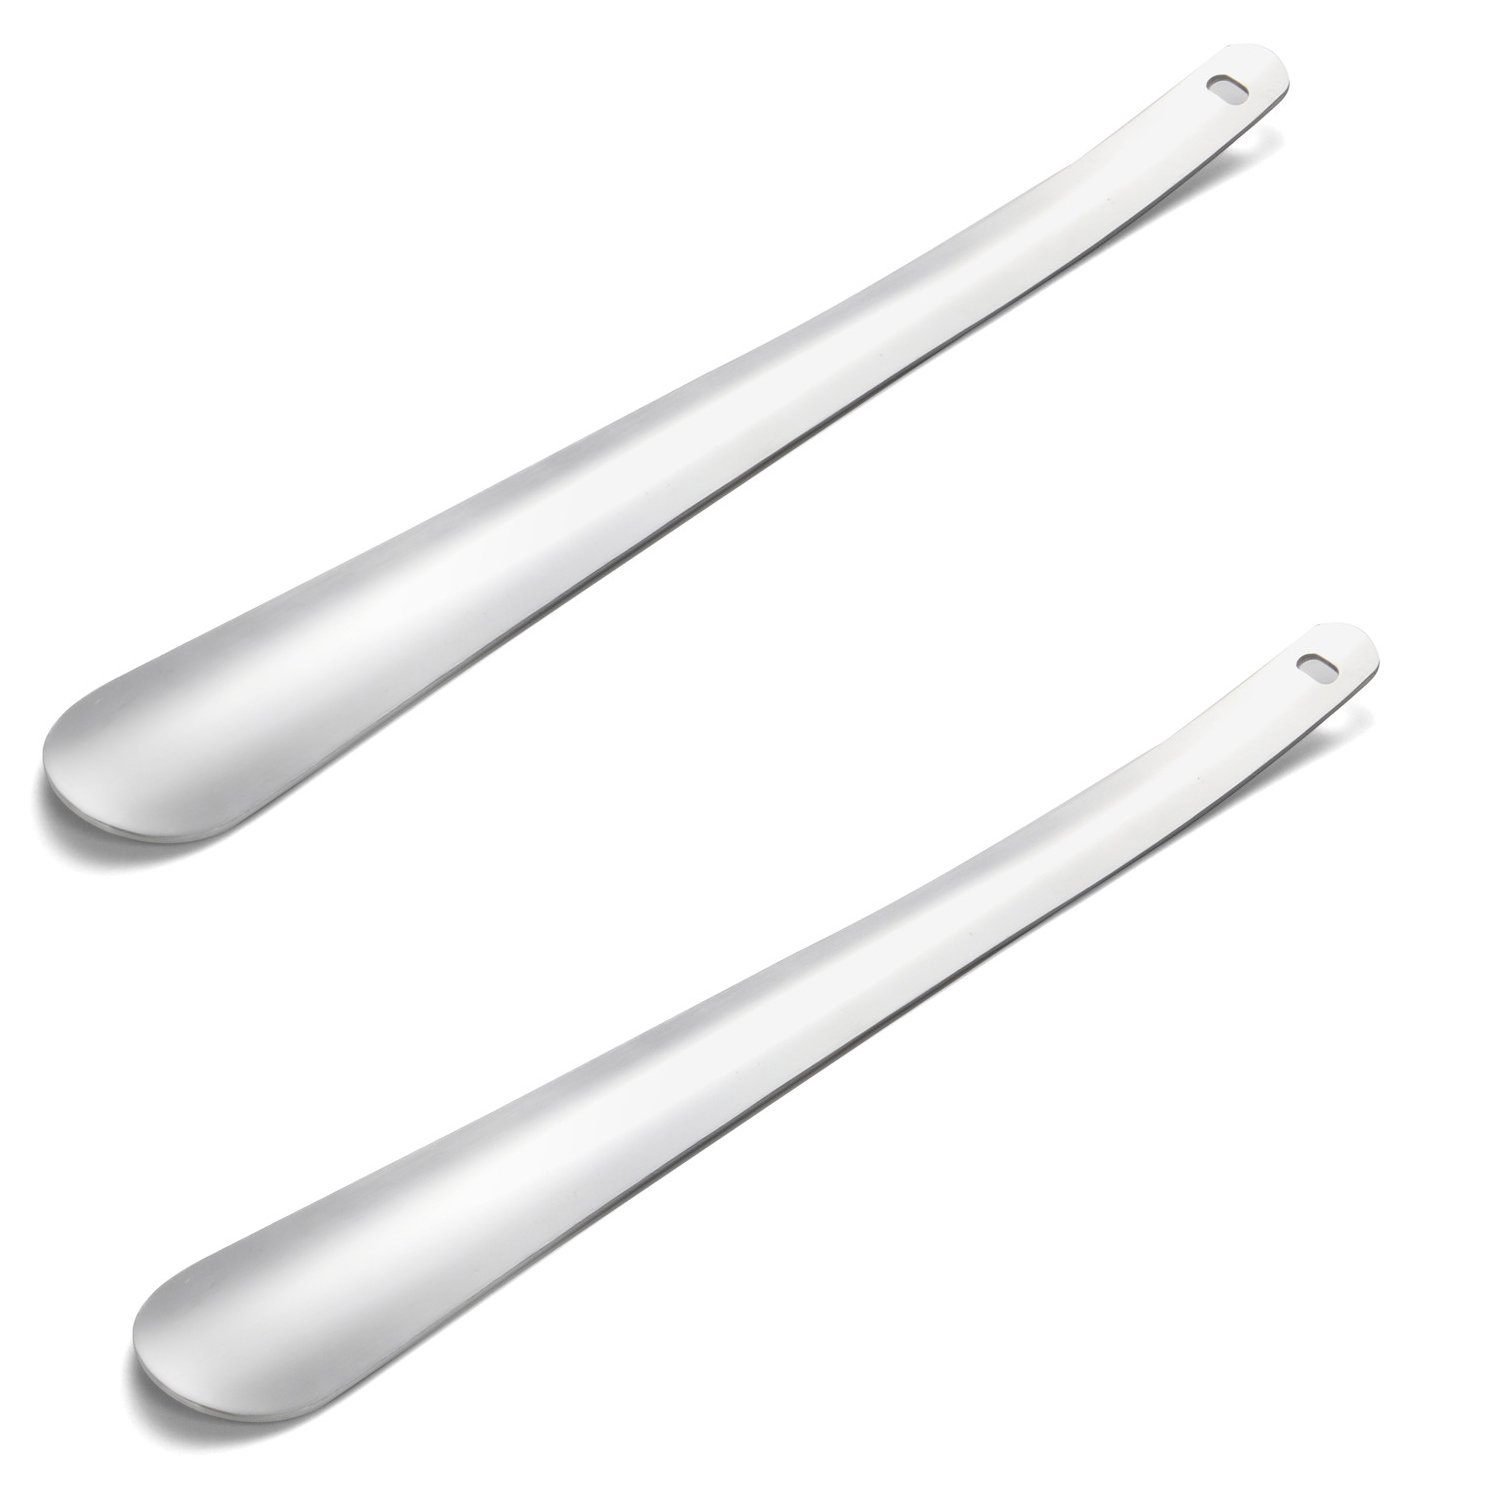 Long Handled Shoe Horn by Rirether: 2Pack Sturdy Stainless Steel Shoehorn for Shoes & Boots|Extra Long Non Bending Handle & Perfect Angle For Heel Sliding, Great for Men Women Seniors & Pregnancy